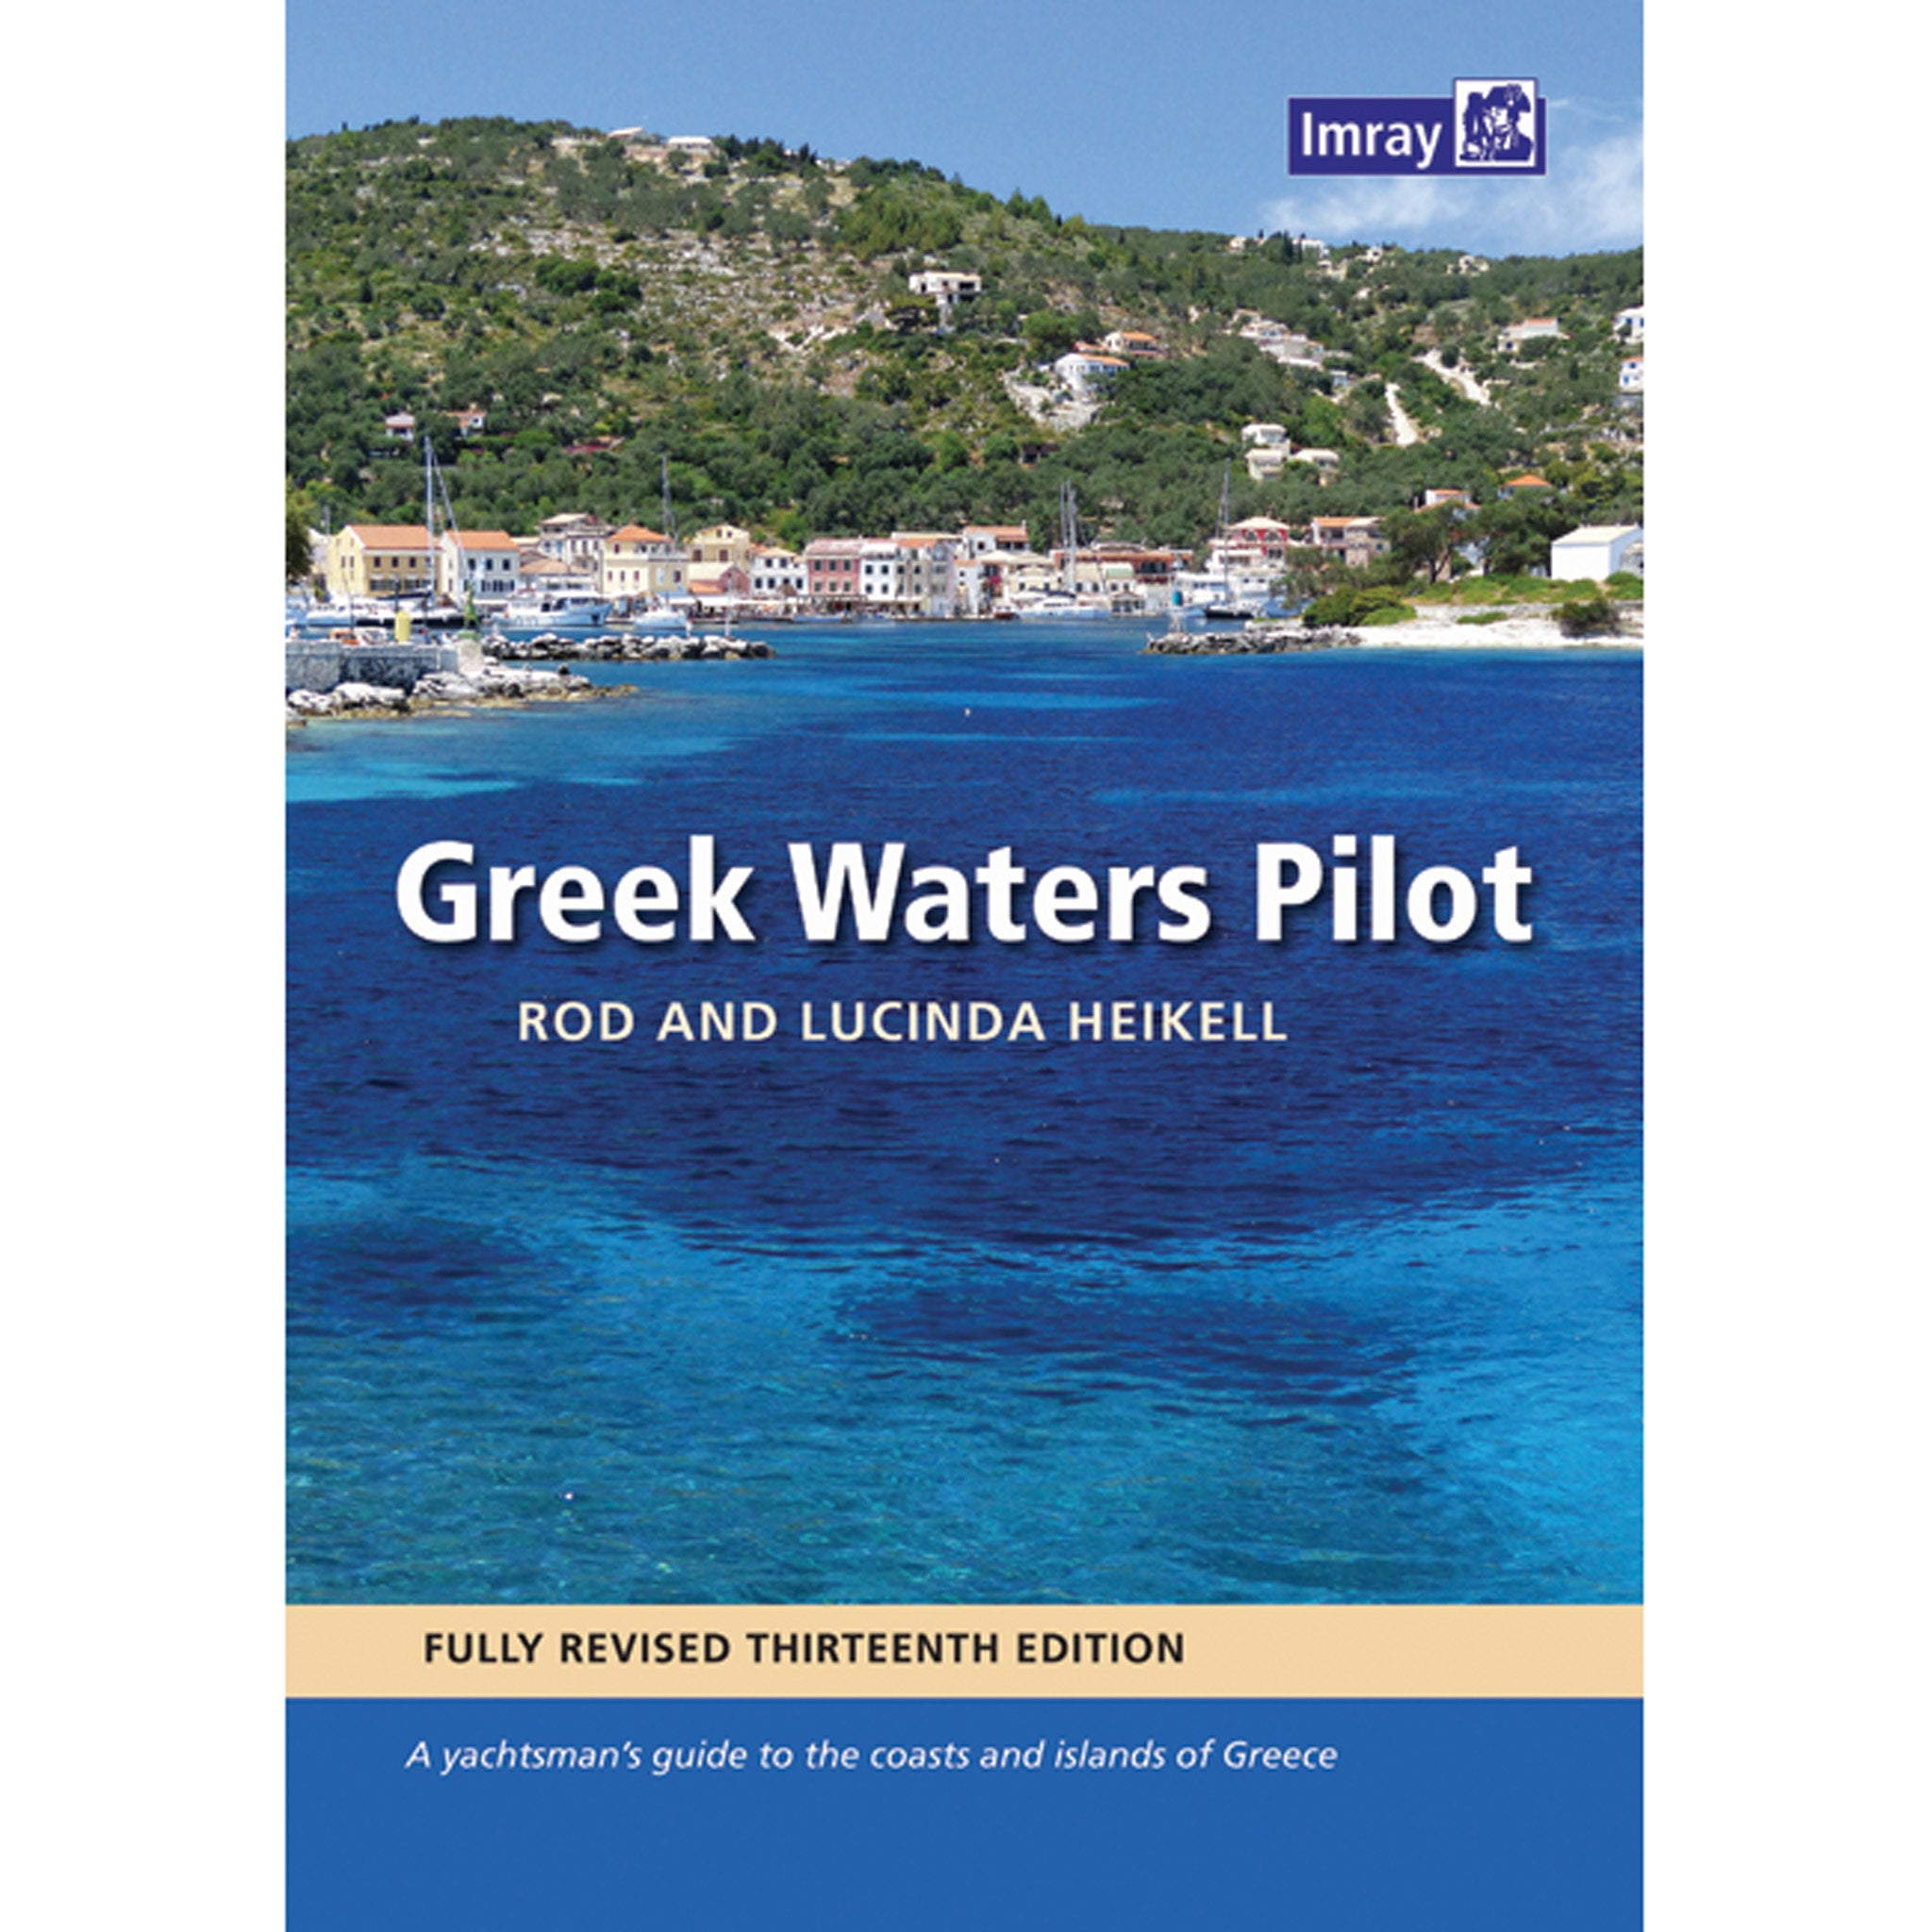 Imray Greek Waters Pilot